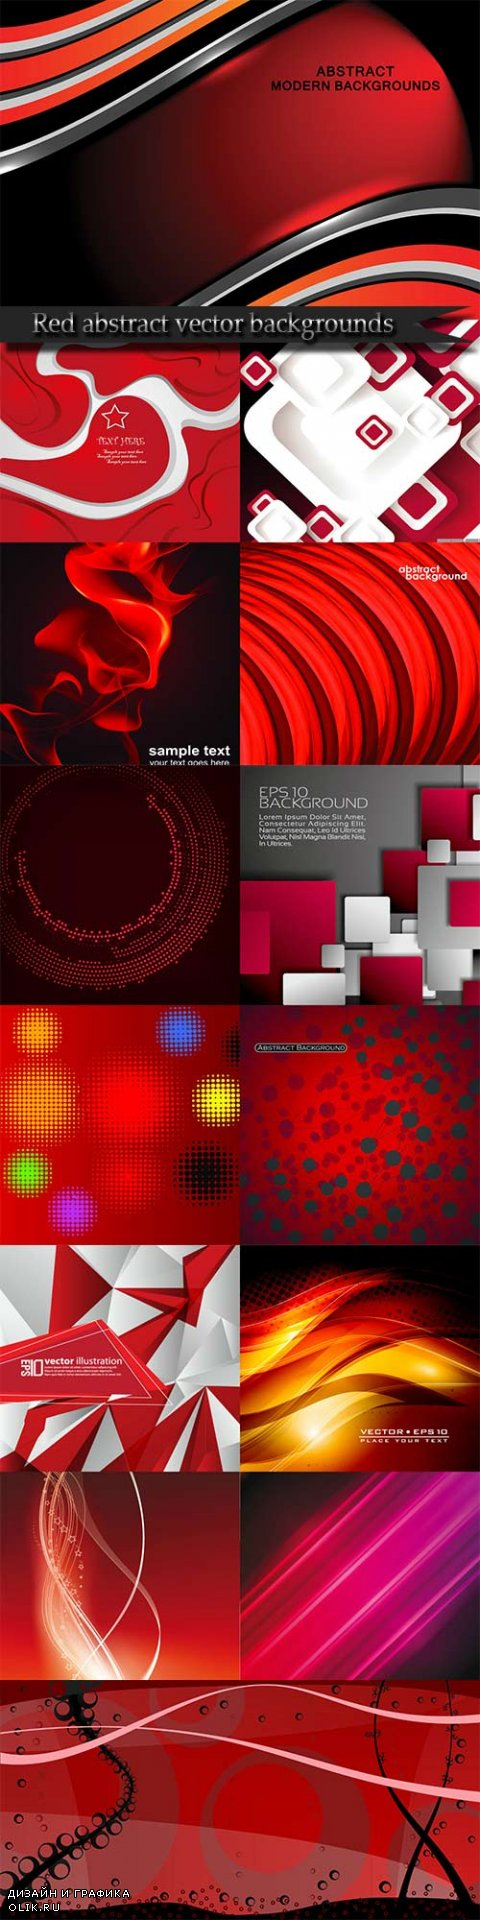 Red abstract vector backgrounds